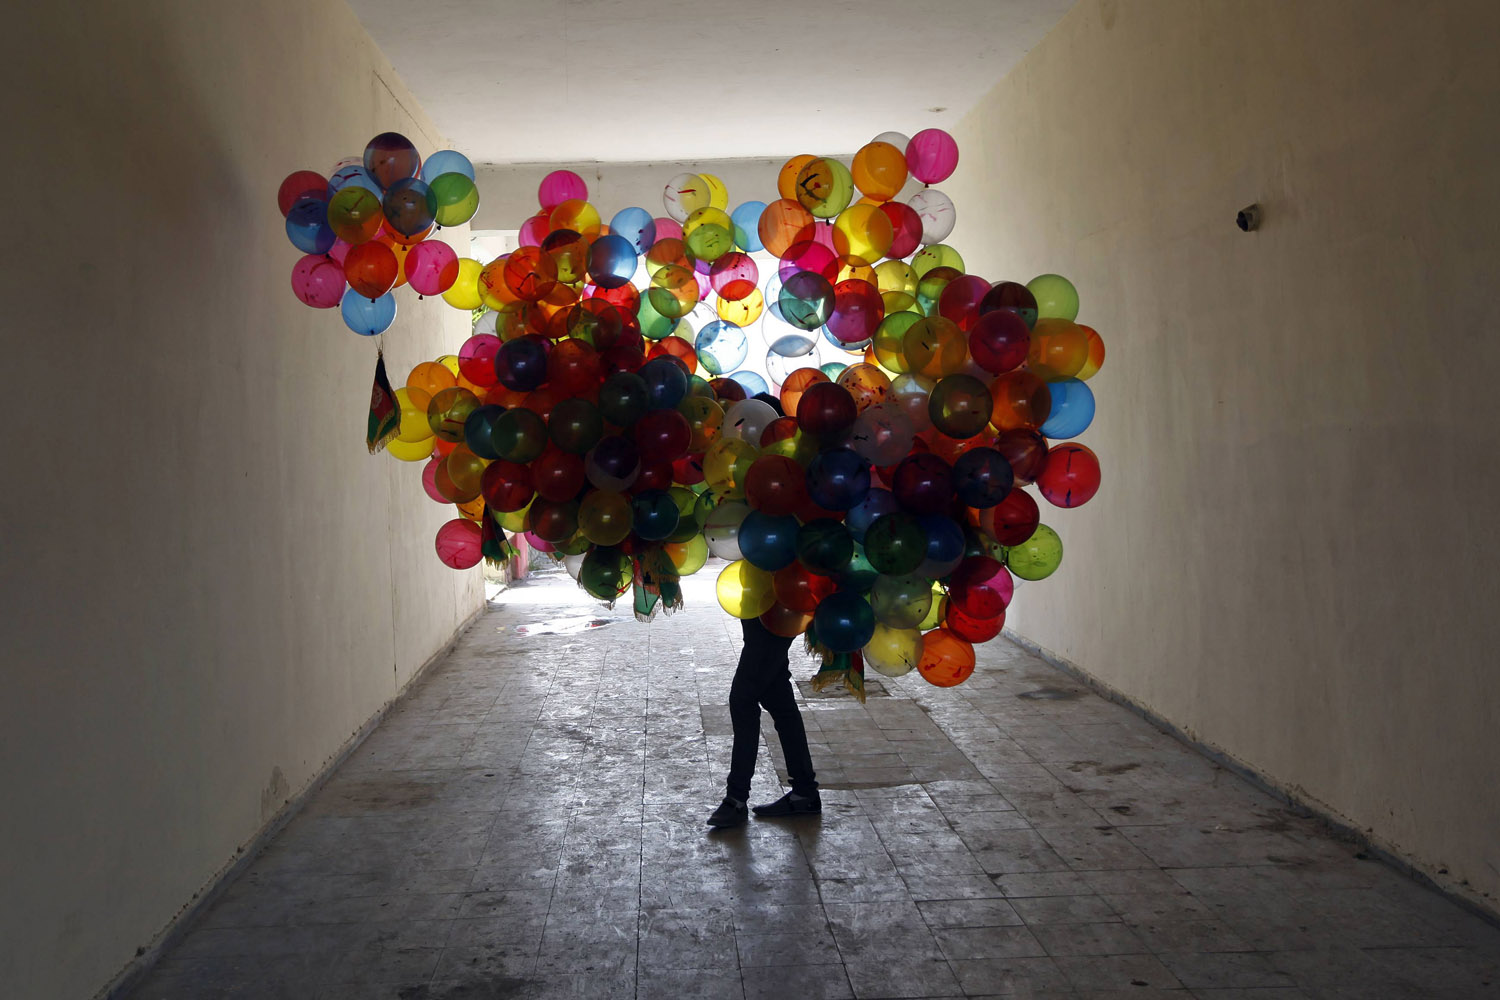 Aug. 14, 2012. A man holds balloons for sale near the National Stadium in Kabul.